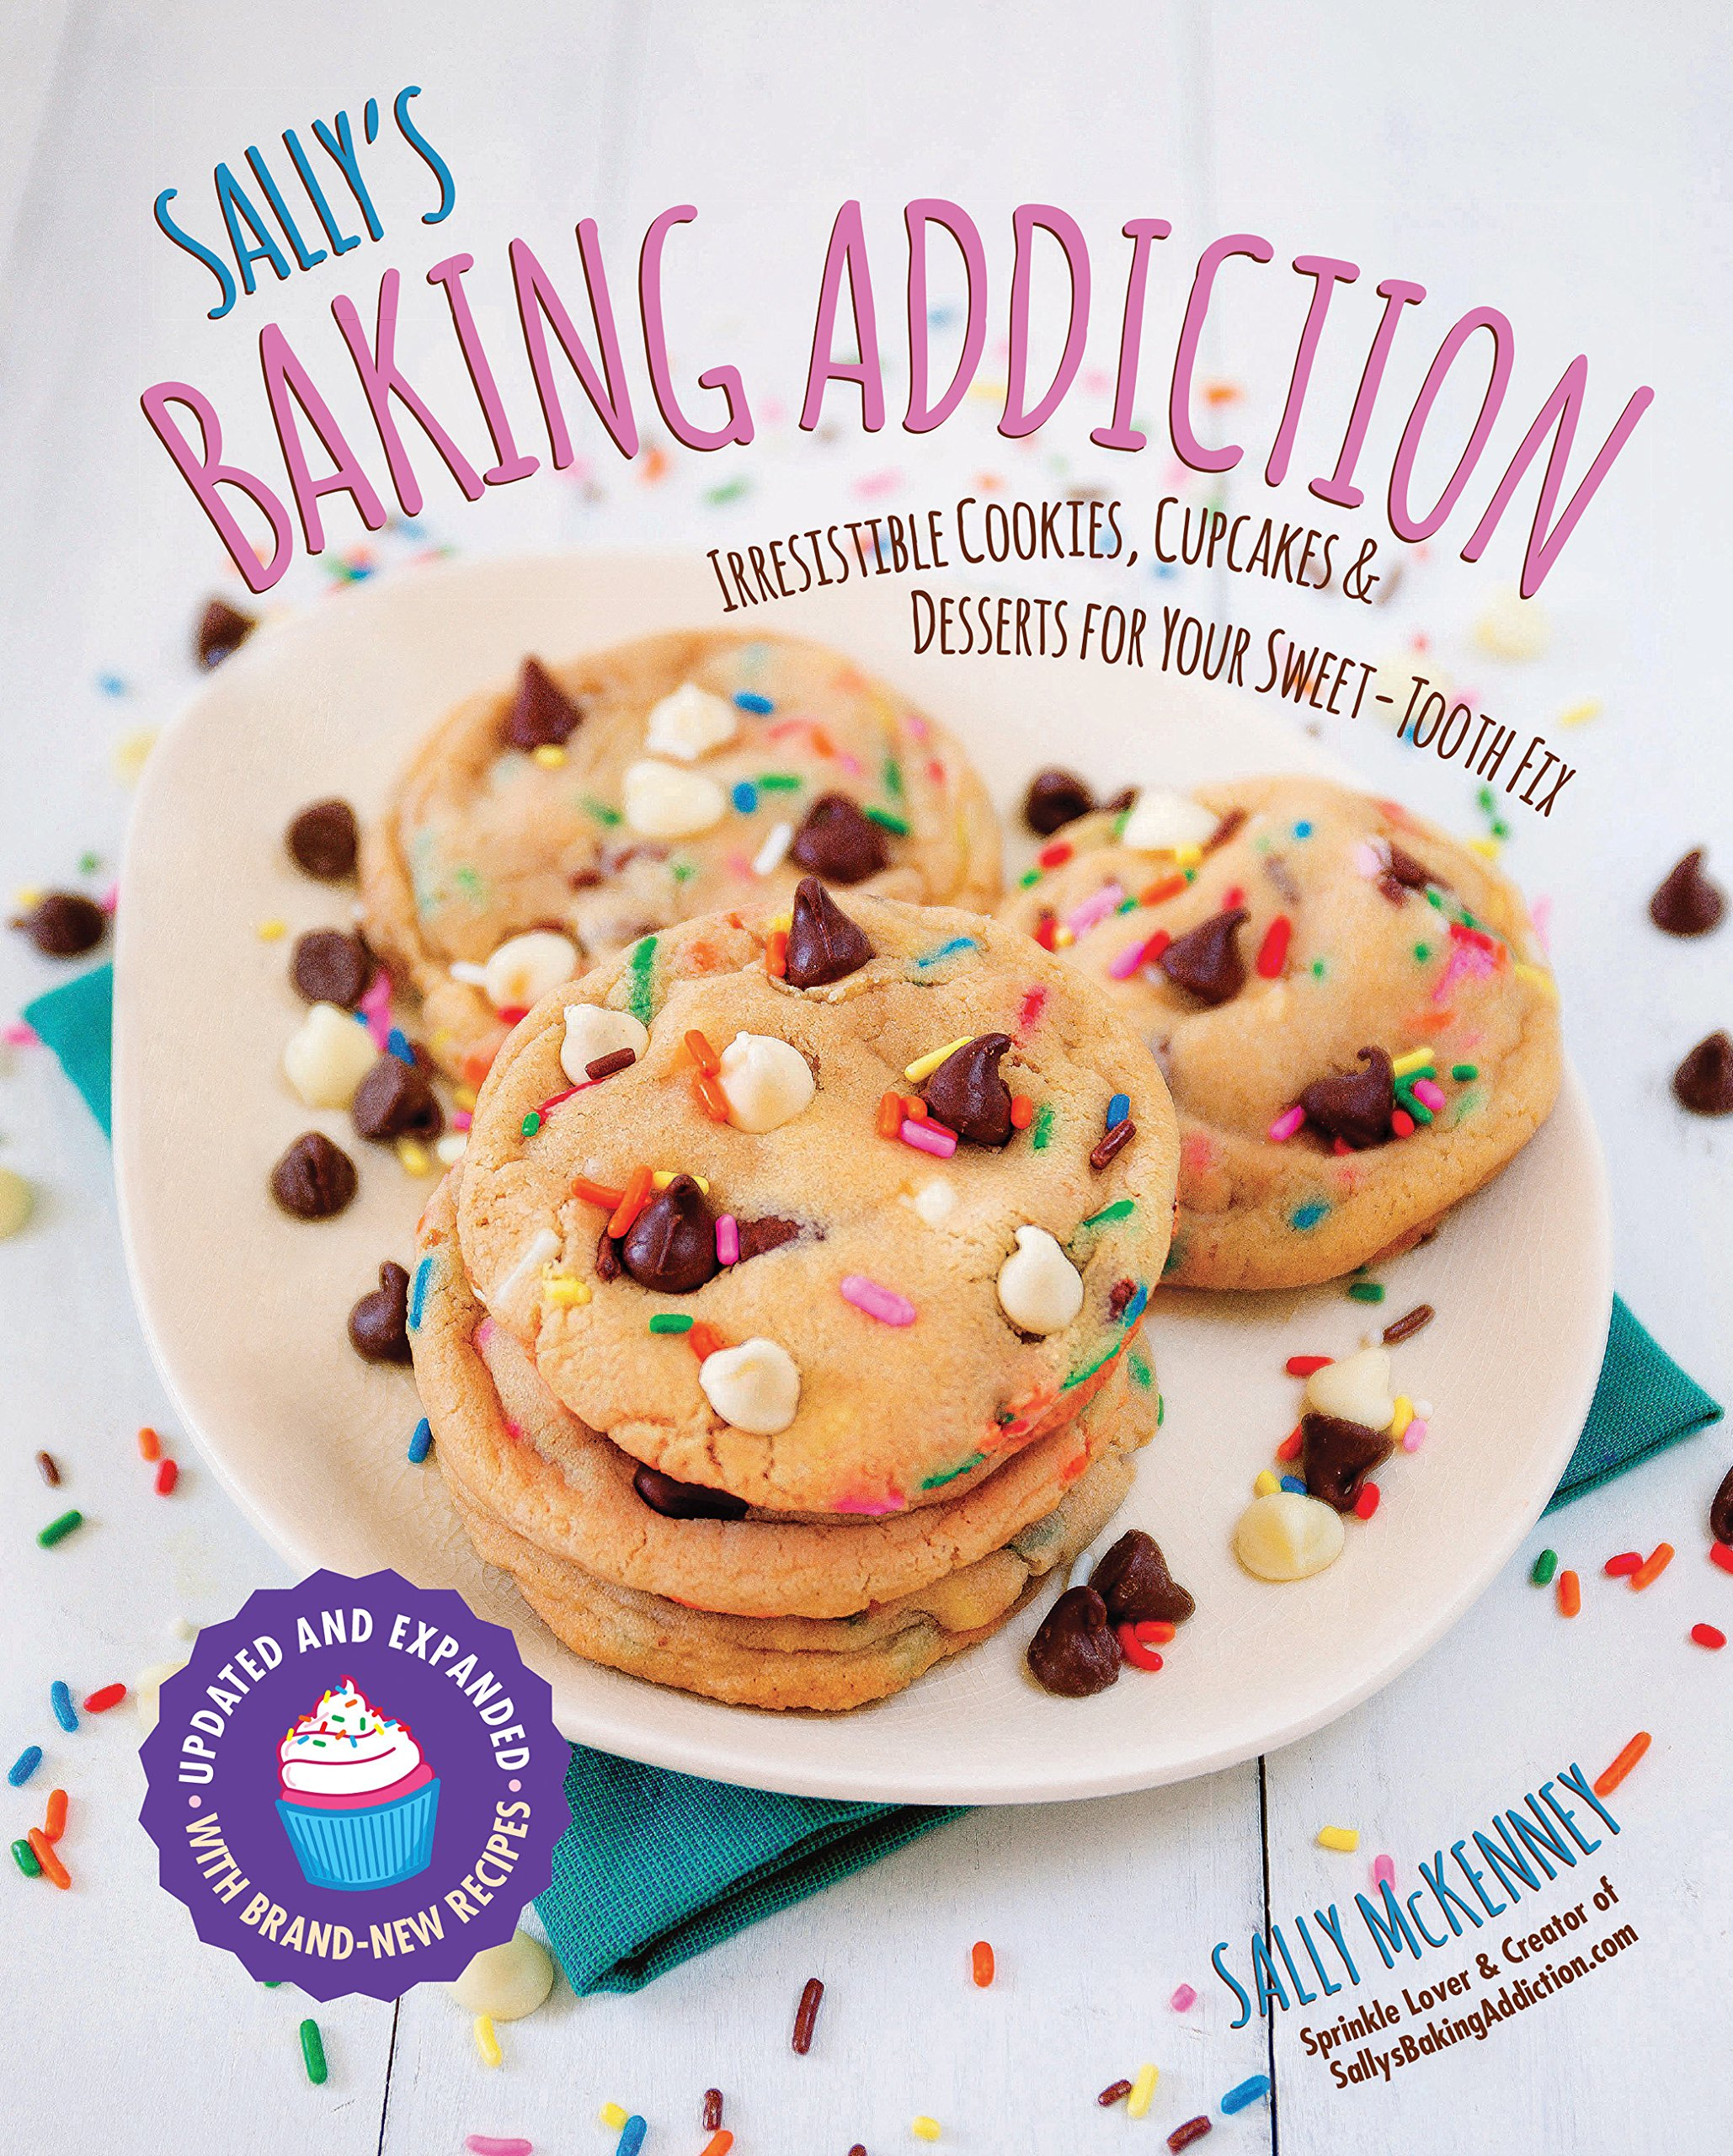 Sallys Baking Addiction Irresistible Sweet Tooth product image